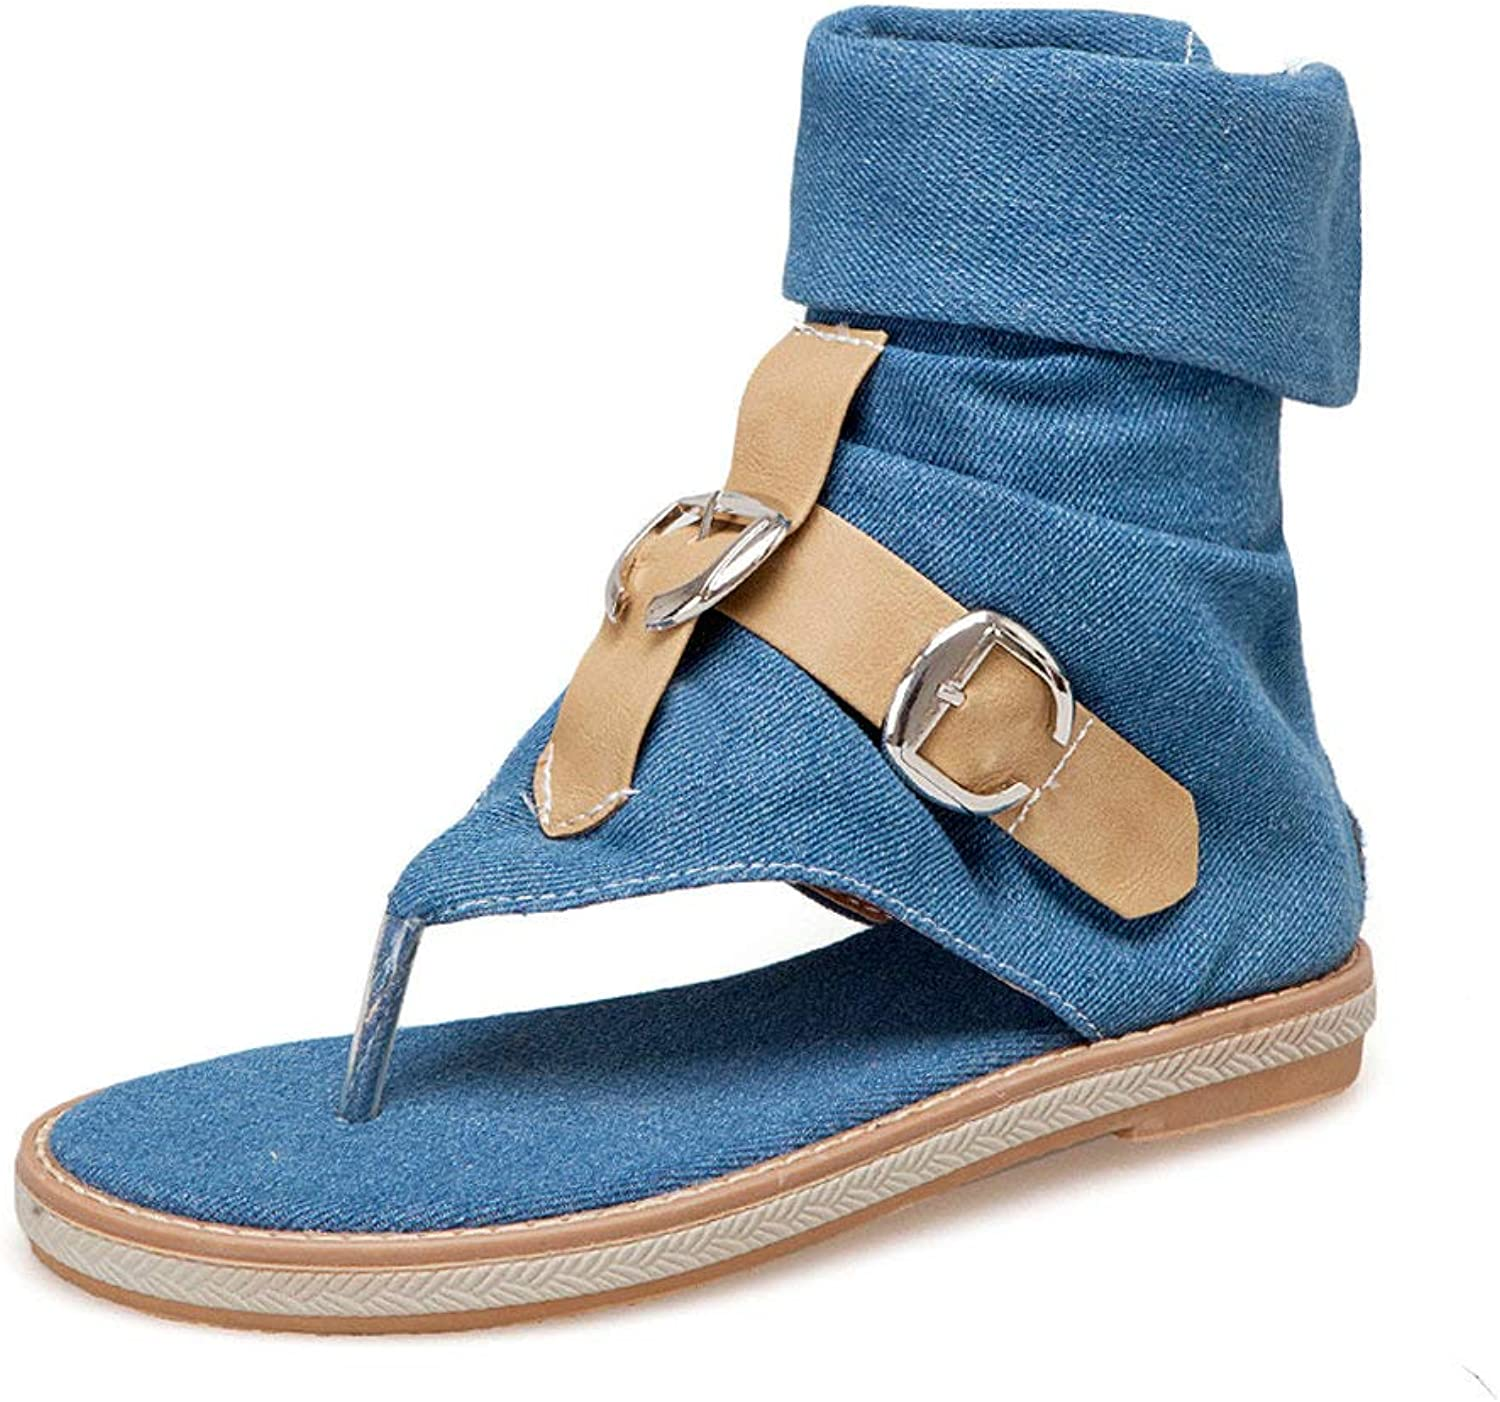 AnMengXinLing Casual Flat Sandals Women Flip Flops Denim Buckle Thong Summer Ankle Boots Comfortable Soft Rubber Sole Outdoor Breathable Walking shoes